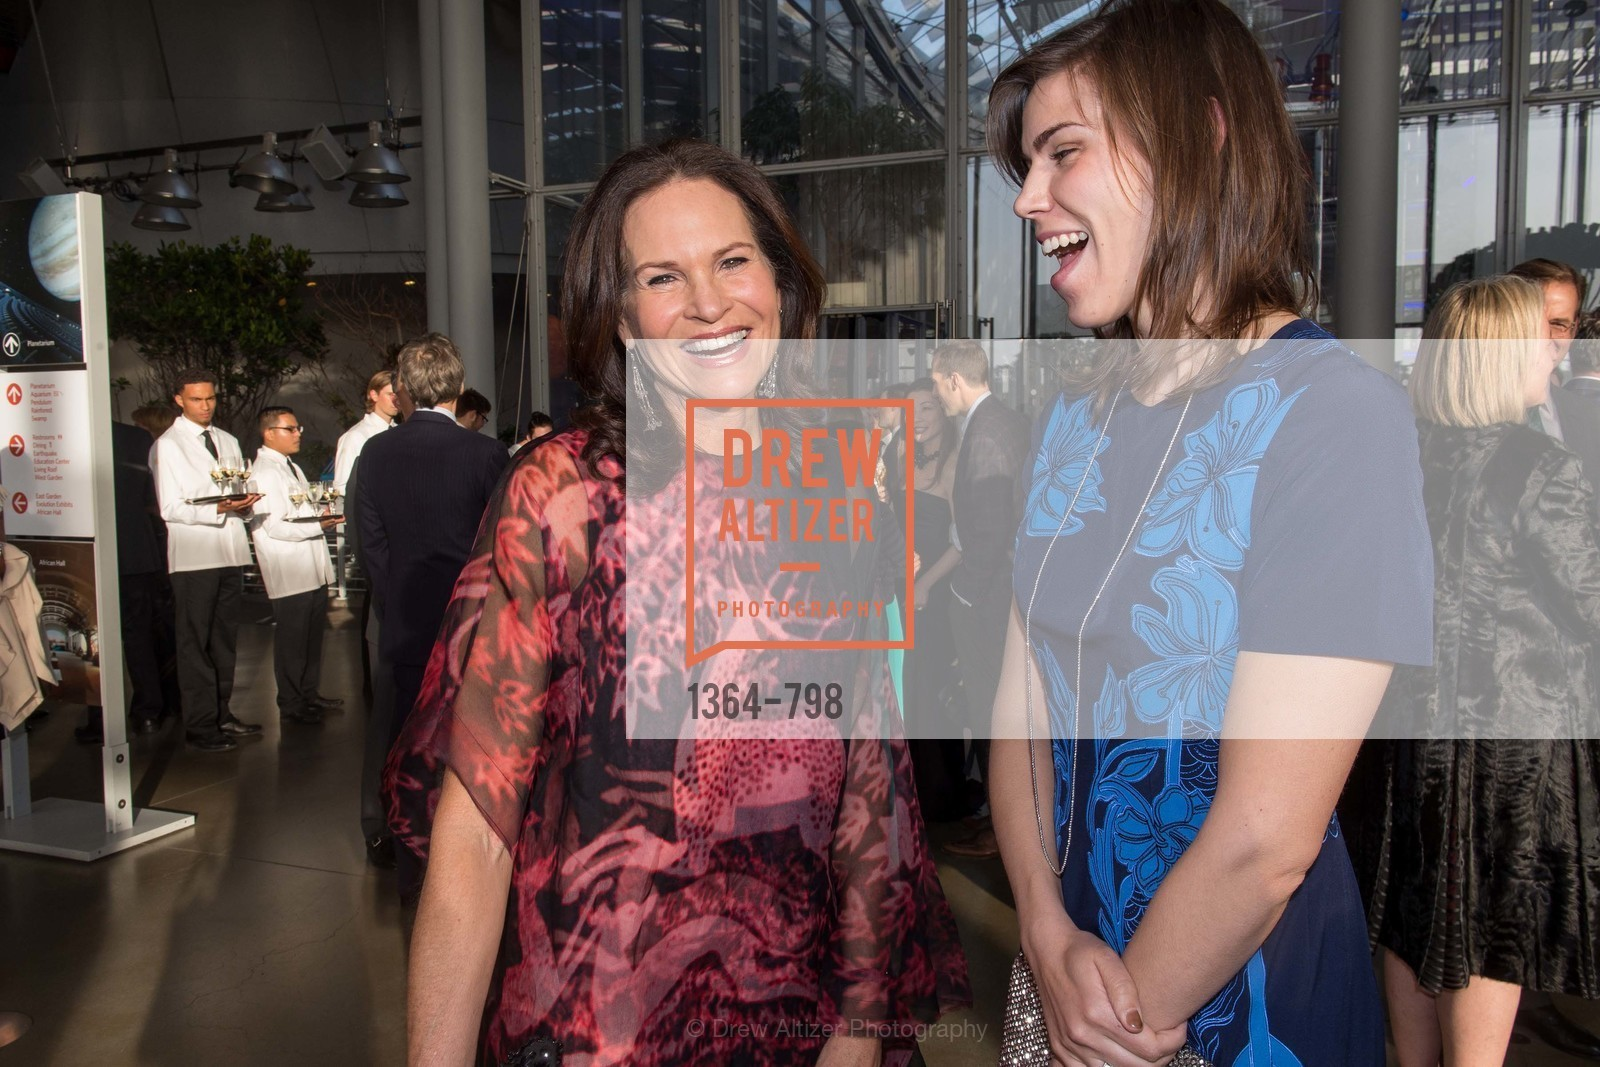 Randi Fisher, Nicole Schuetz, CALIFORNIA ACADEMY OF SCIENCES - Big Bang Gala 2015, US, April 24th, 2015,Drew Altizer, Drew Altizer Photography, full-service agency, private events, San Francisco photographer, photographer california